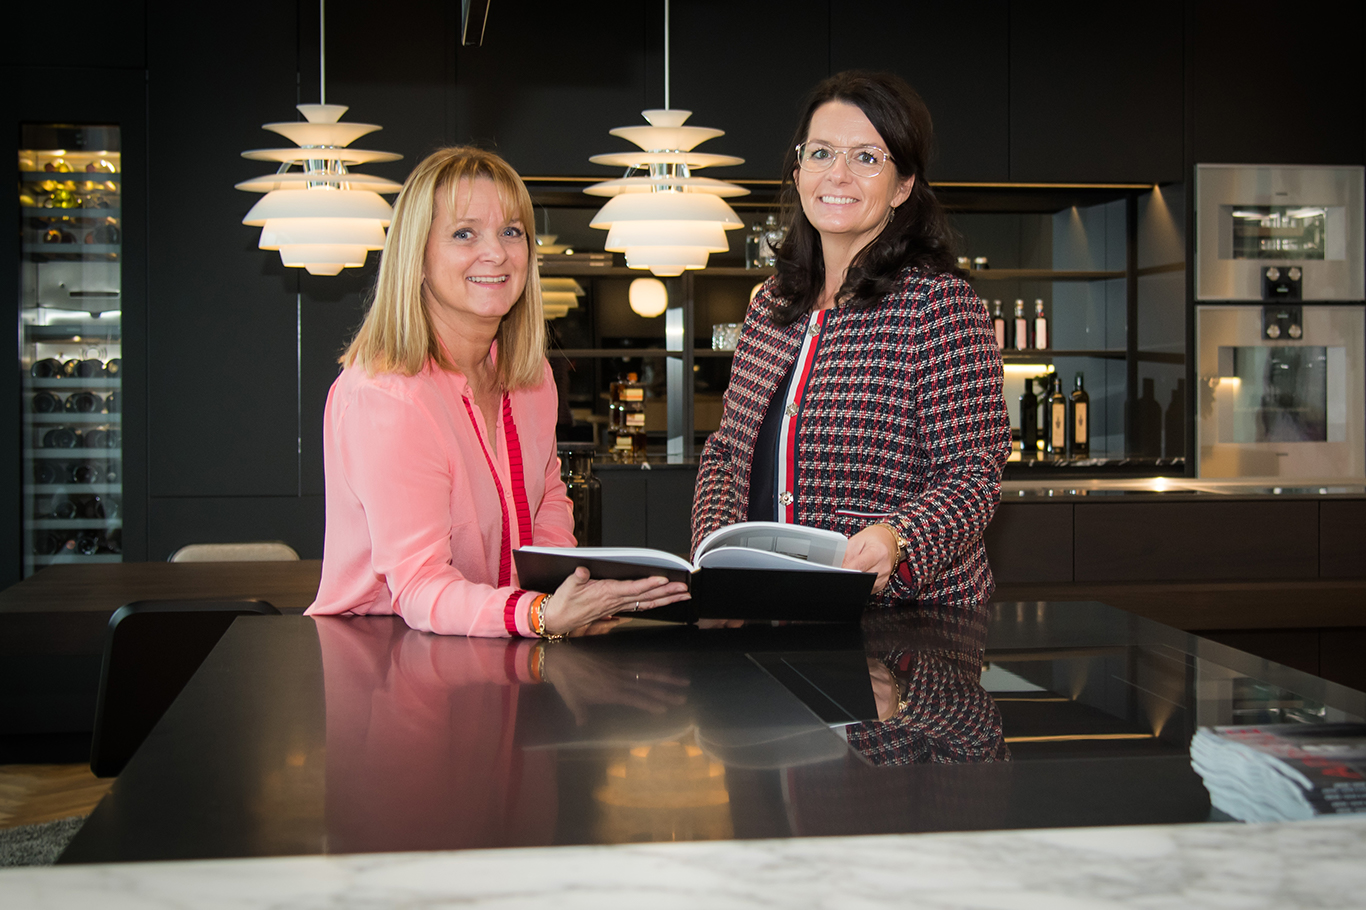 Bettina Mortensen and Jannie Kjær are owners of Multiform Aalborg